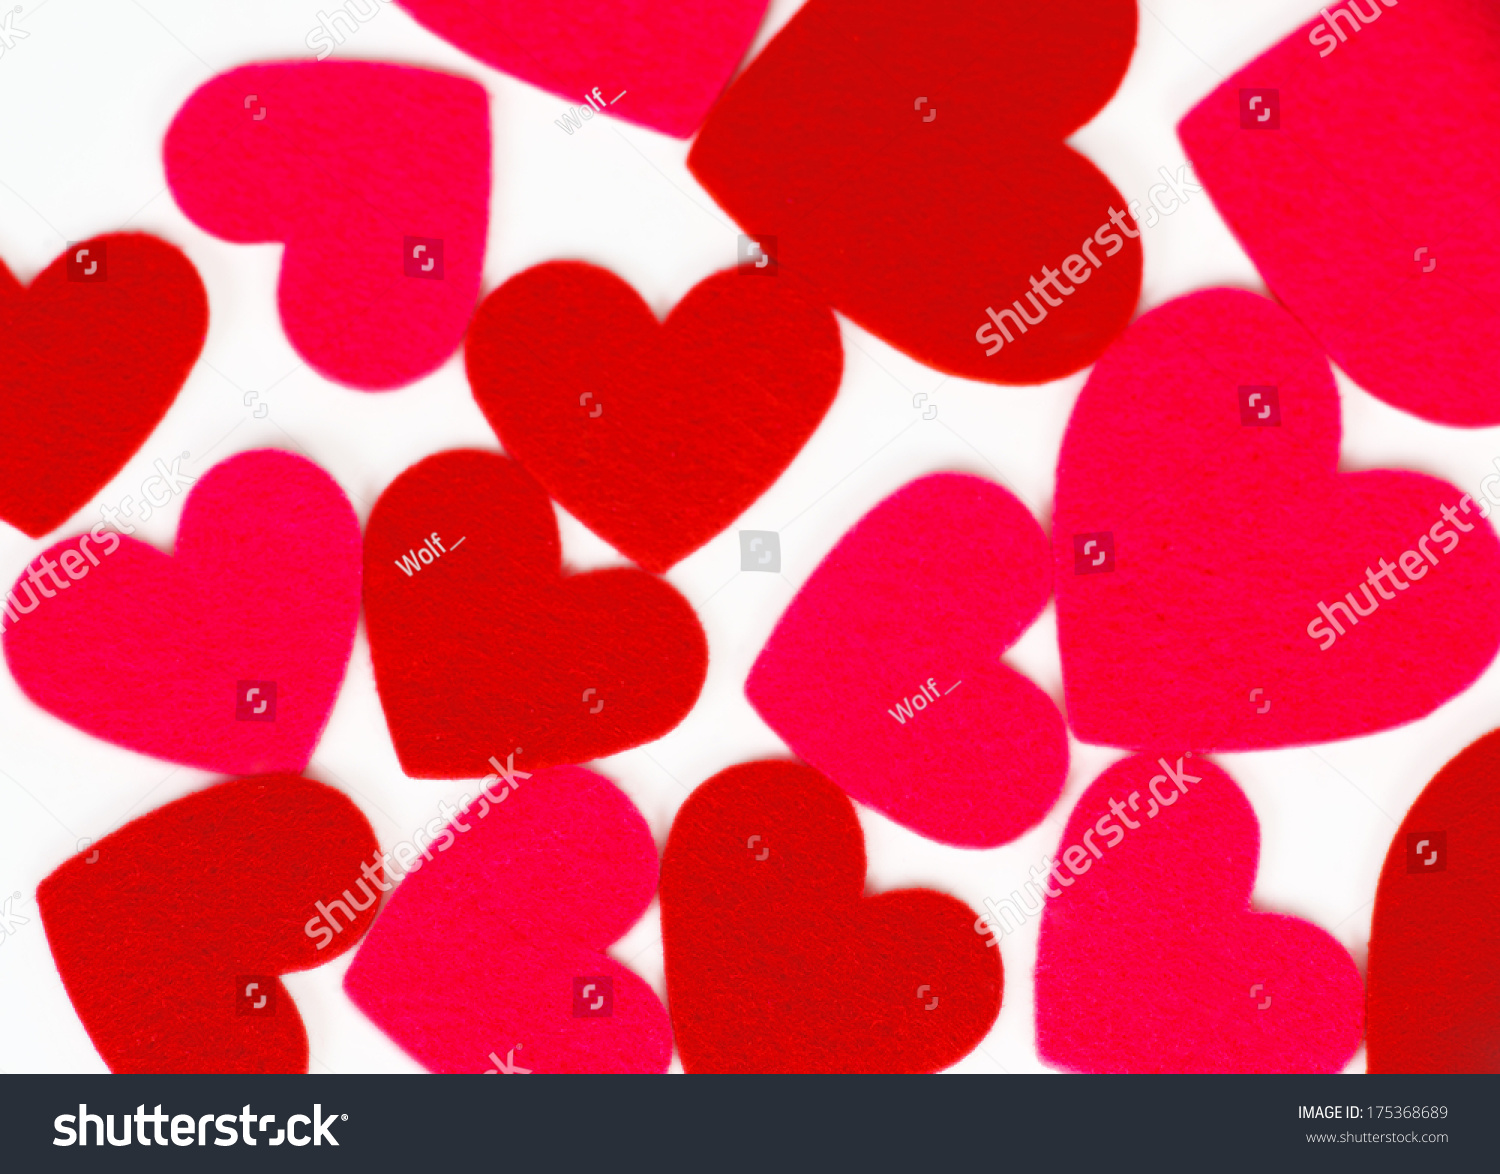 Many Colored Heart Shapes Valentines Day Stock Photo